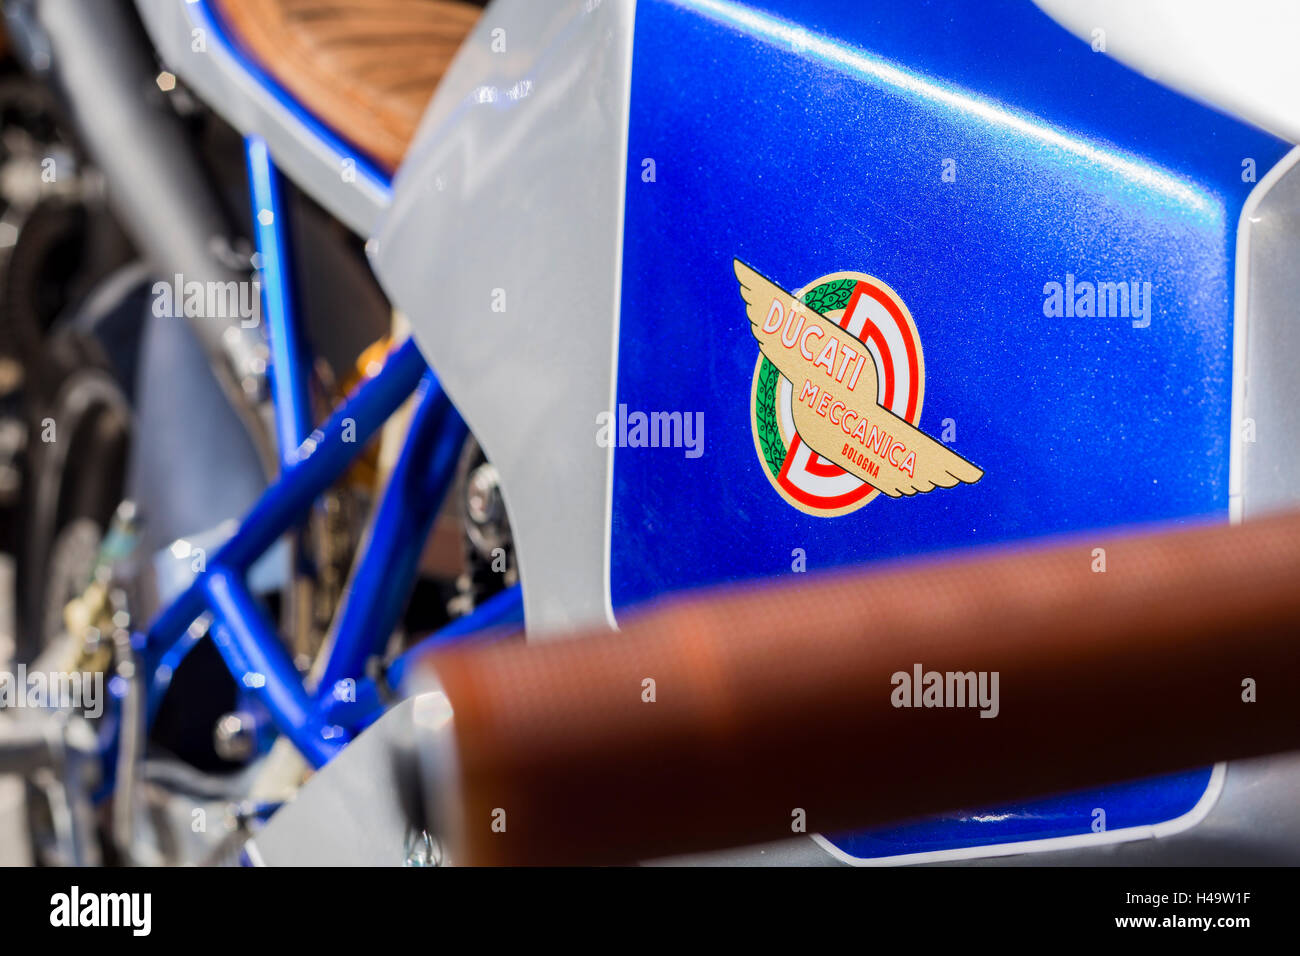 Ducati tank badge detail on a classic desmo racing motorcycle - Stock Image